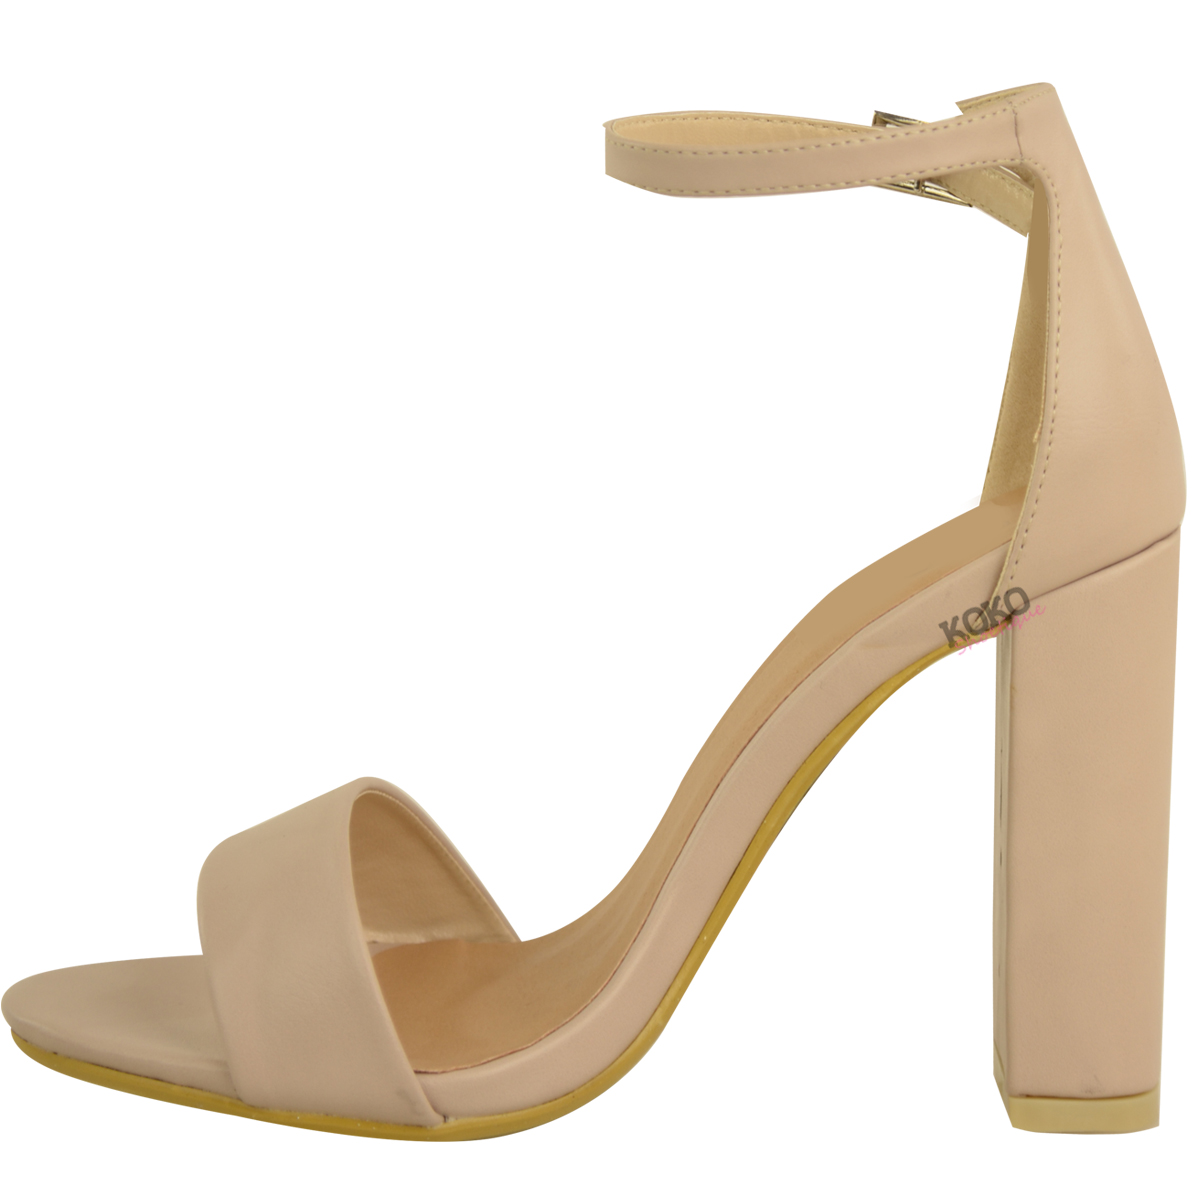 Womens-Ladies-Block-High-Heels-Ankle-Strap-Sexy-Open-Toe-Sandals-Shoes-Size-New miniatuur 20